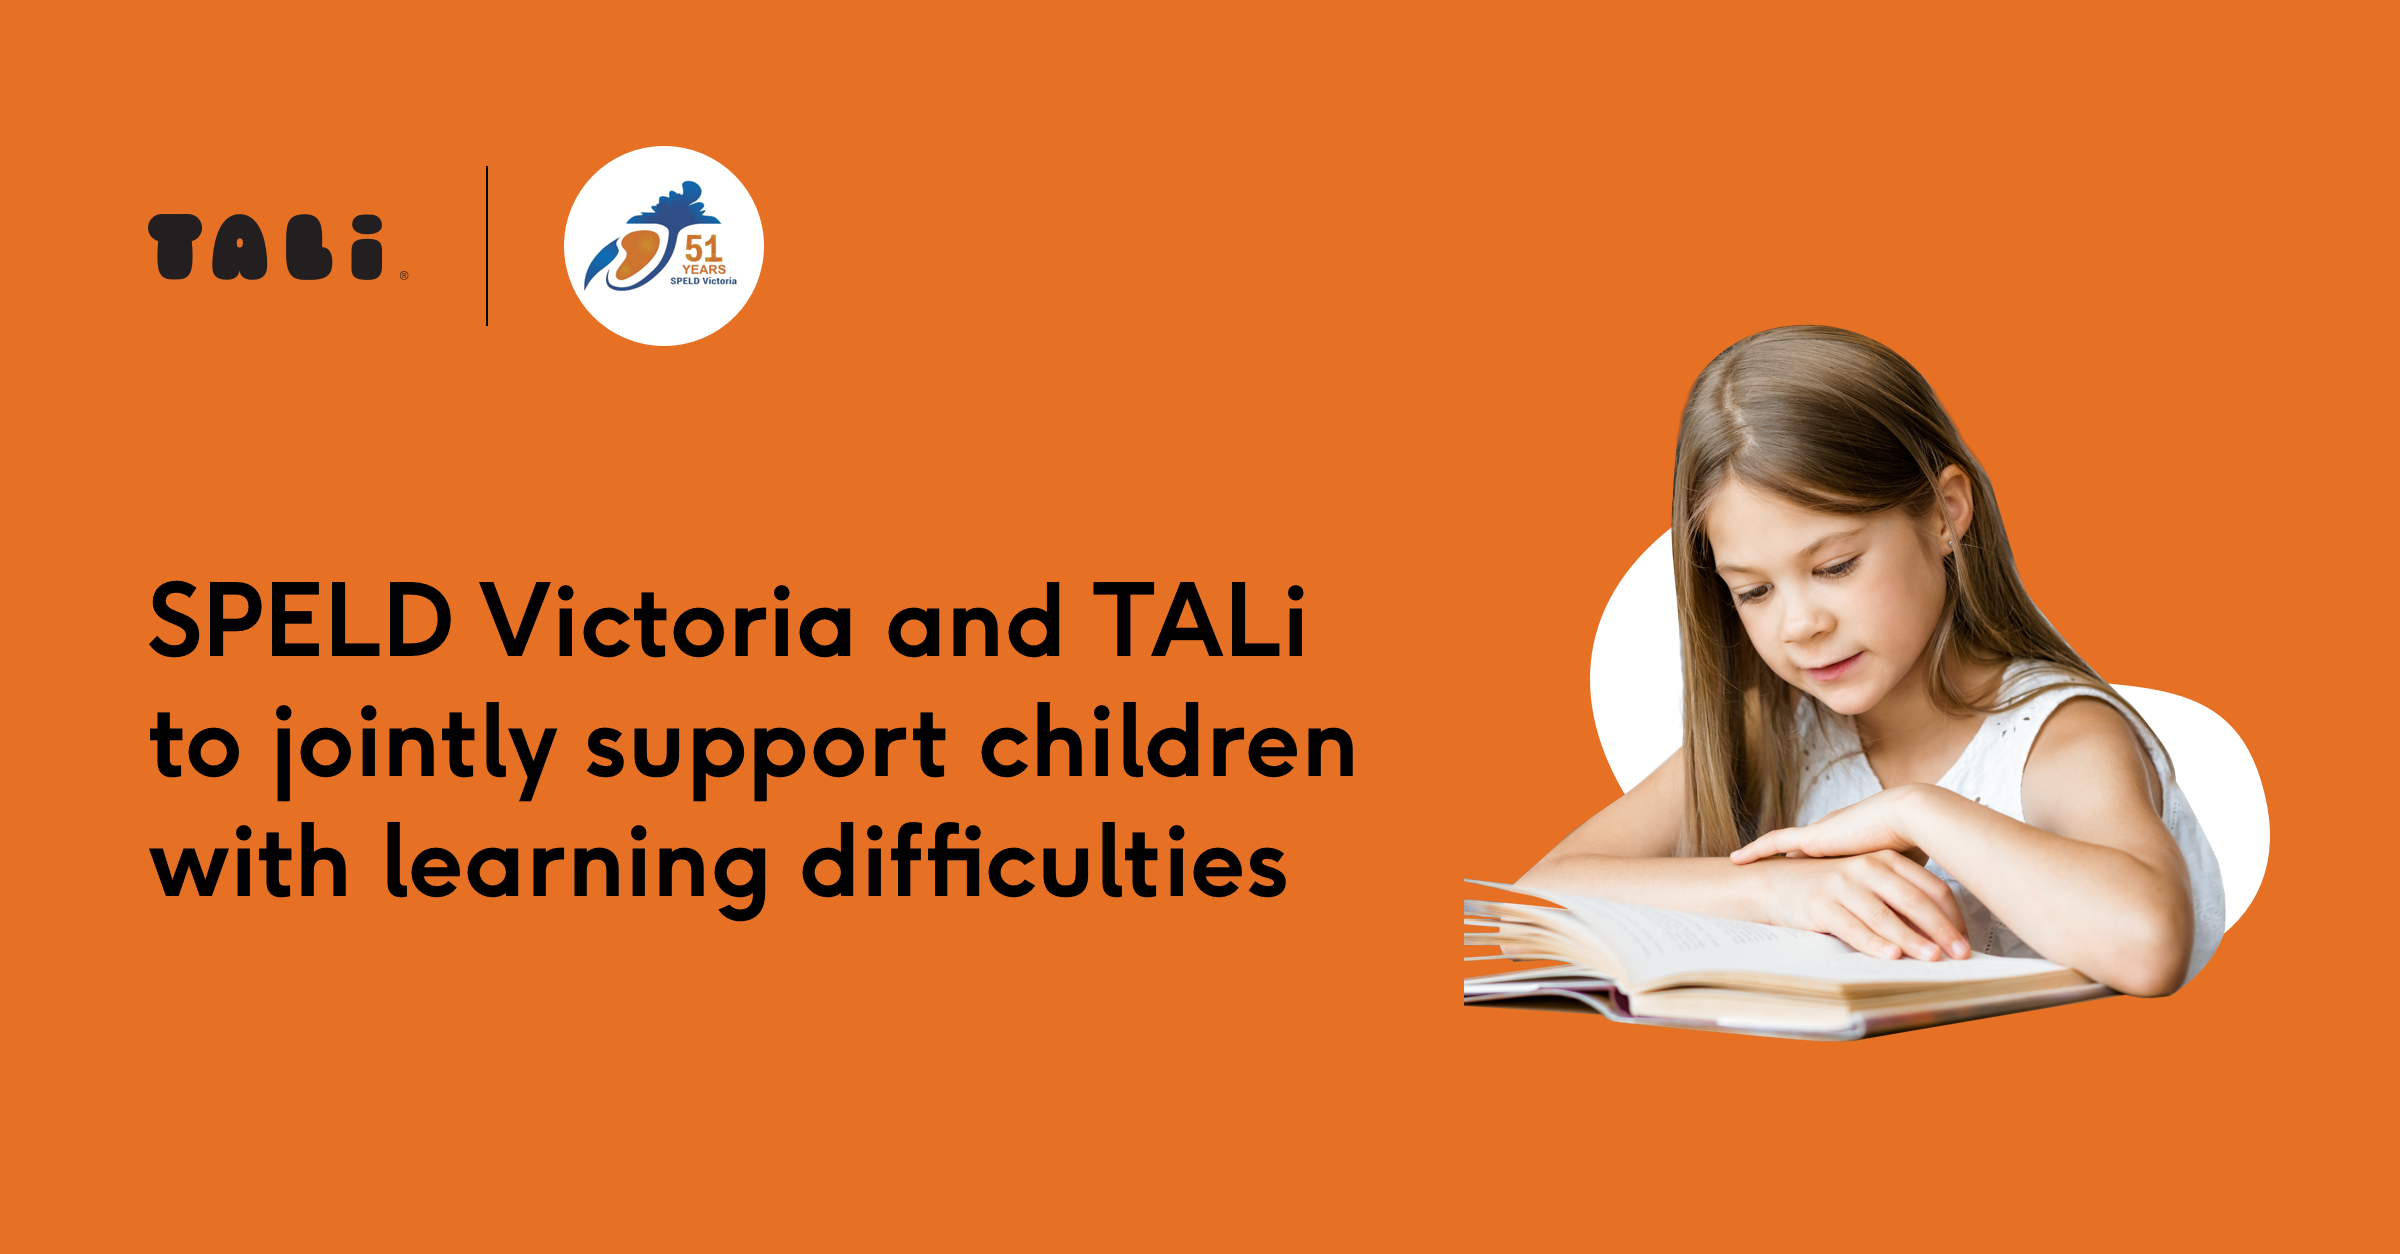 SPELD Victoria and TALi to jointly support children with learning difficulties